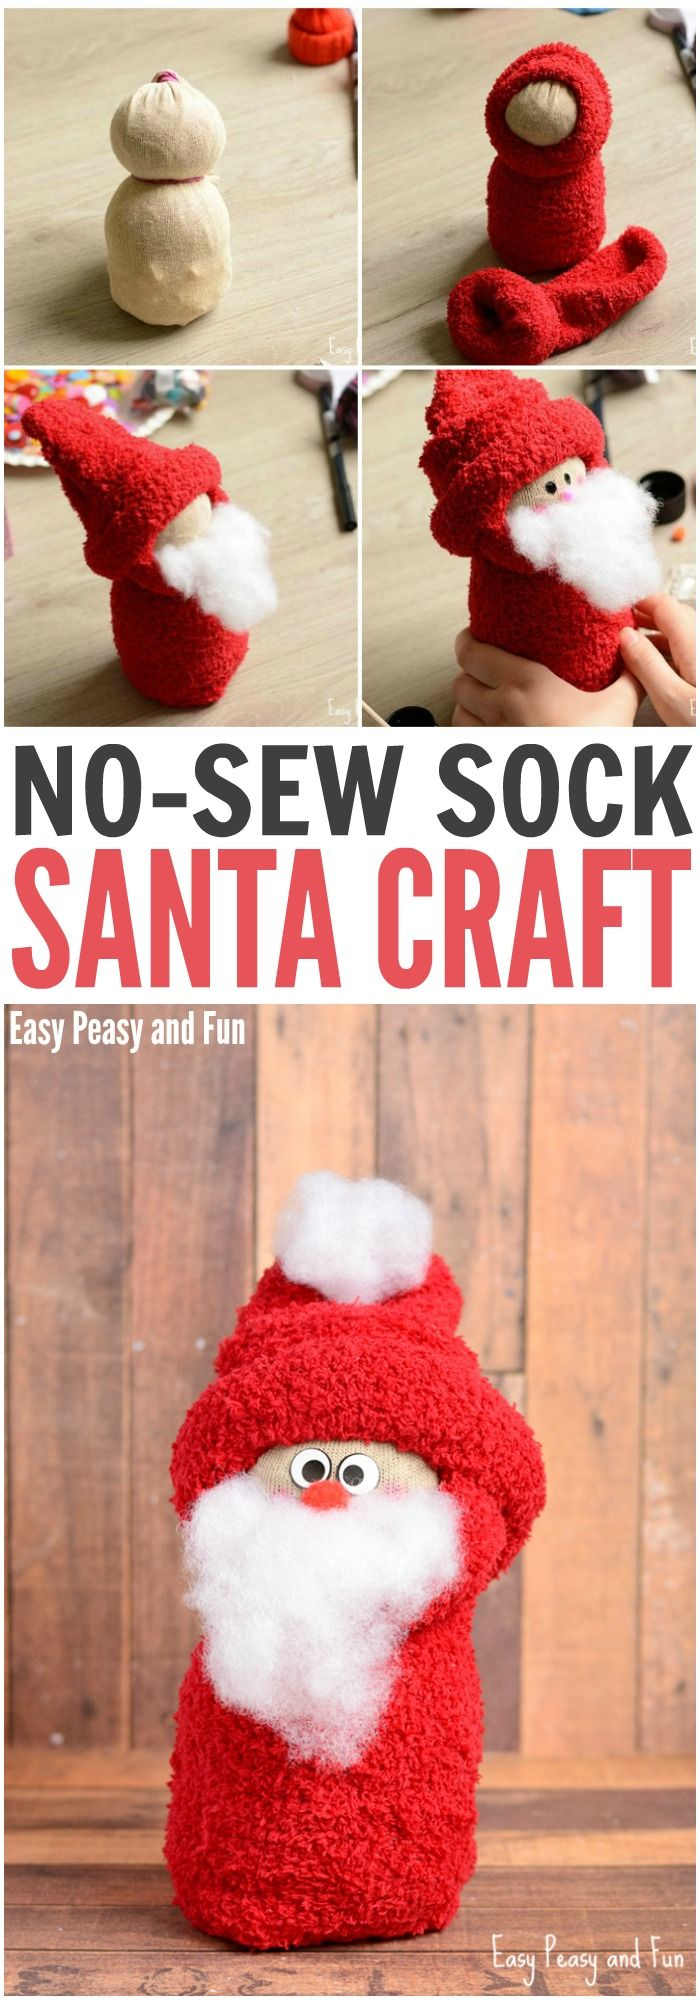 No-Sew Sock Santa Craft for your Little Ones